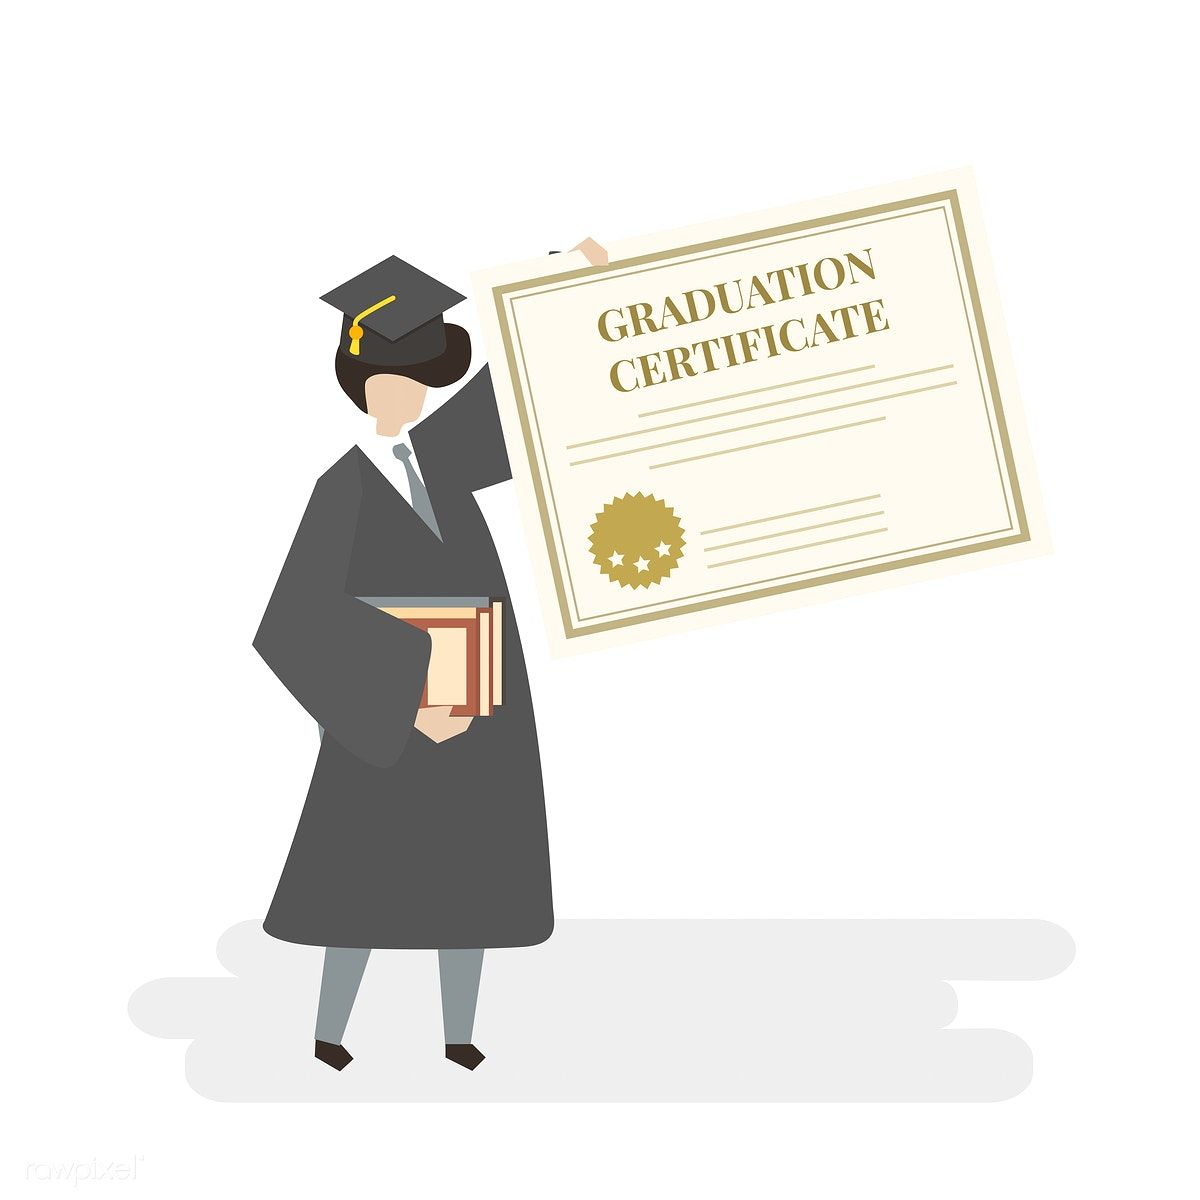 Download Premium Vector Of Illustration Of Graduation Certificate 401763 Graduation Stickers Graduation Graduation Poster